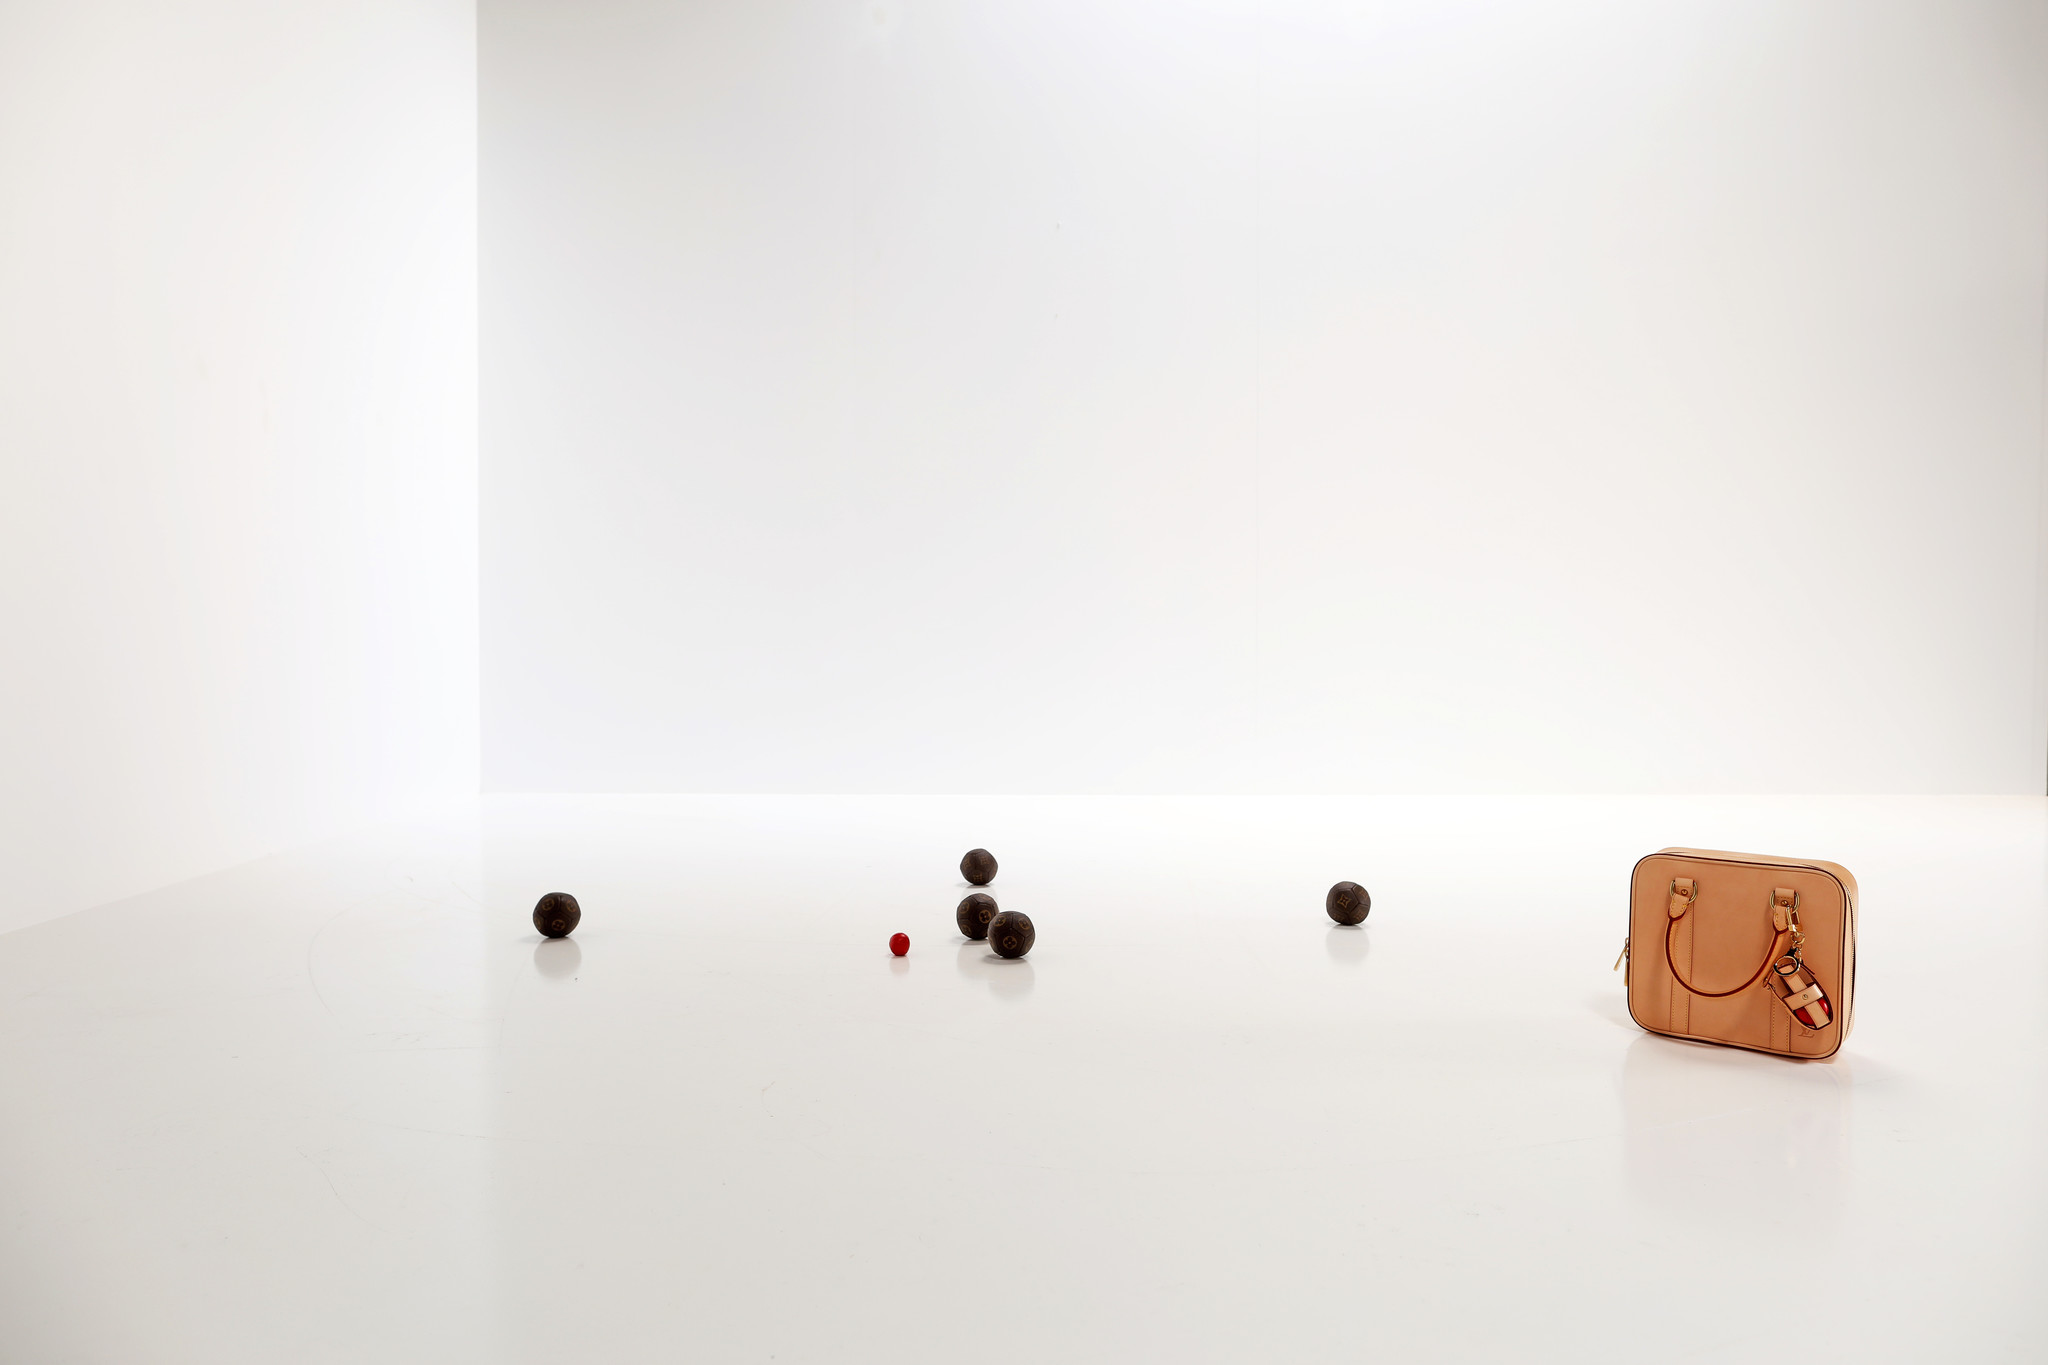 Limited edition Louis Vuitton Petanque Ball Set, 2007